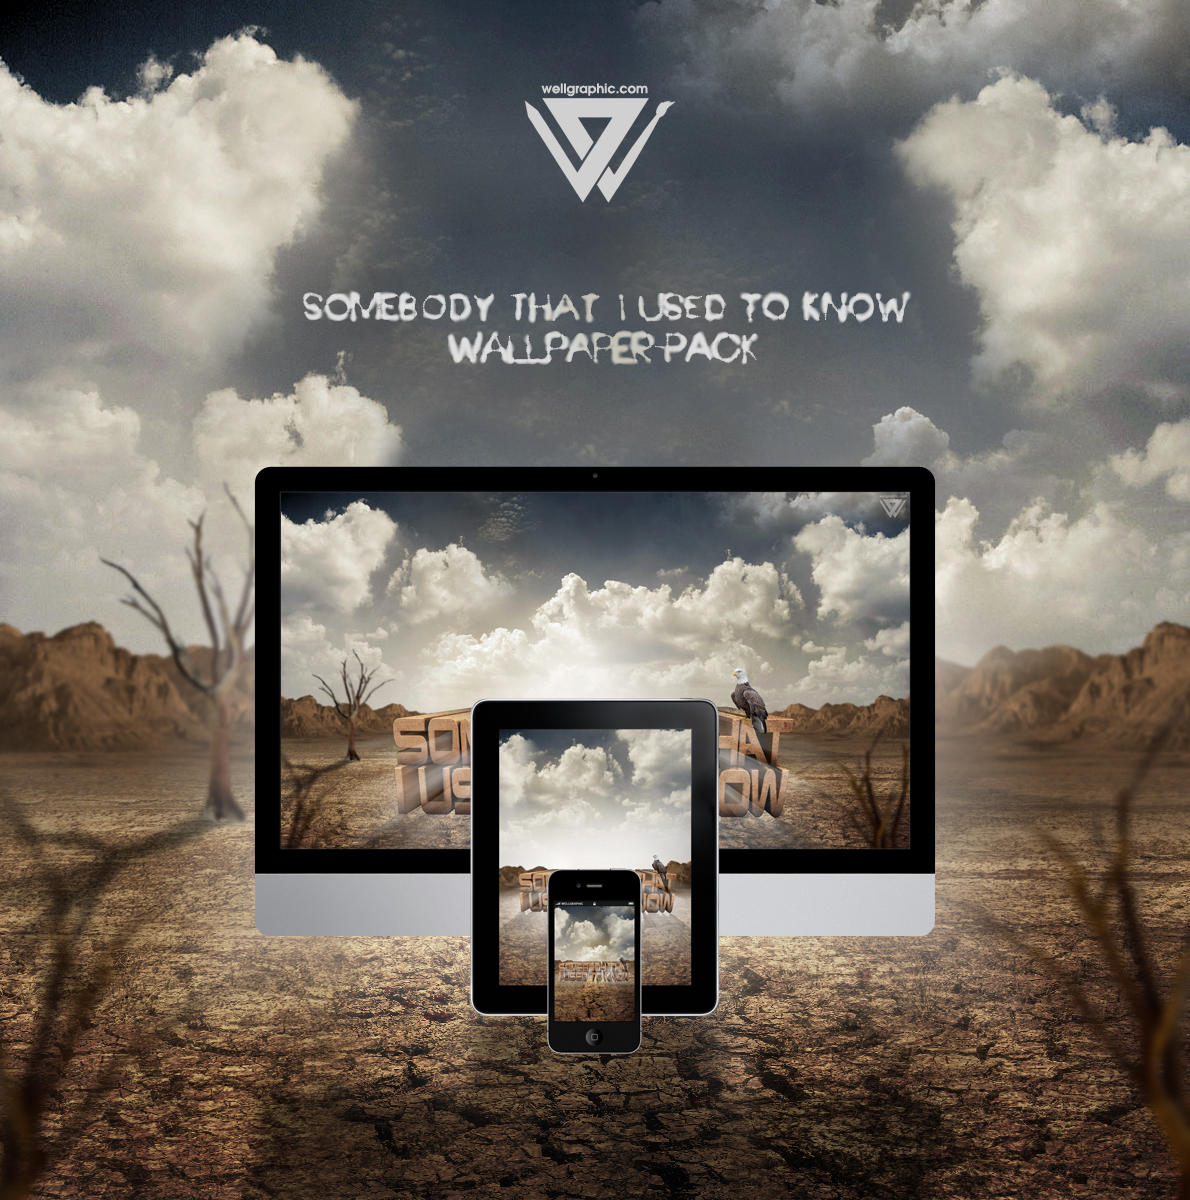 Somebody That I Used To Know Wallpaper-Pack by wellgraphic